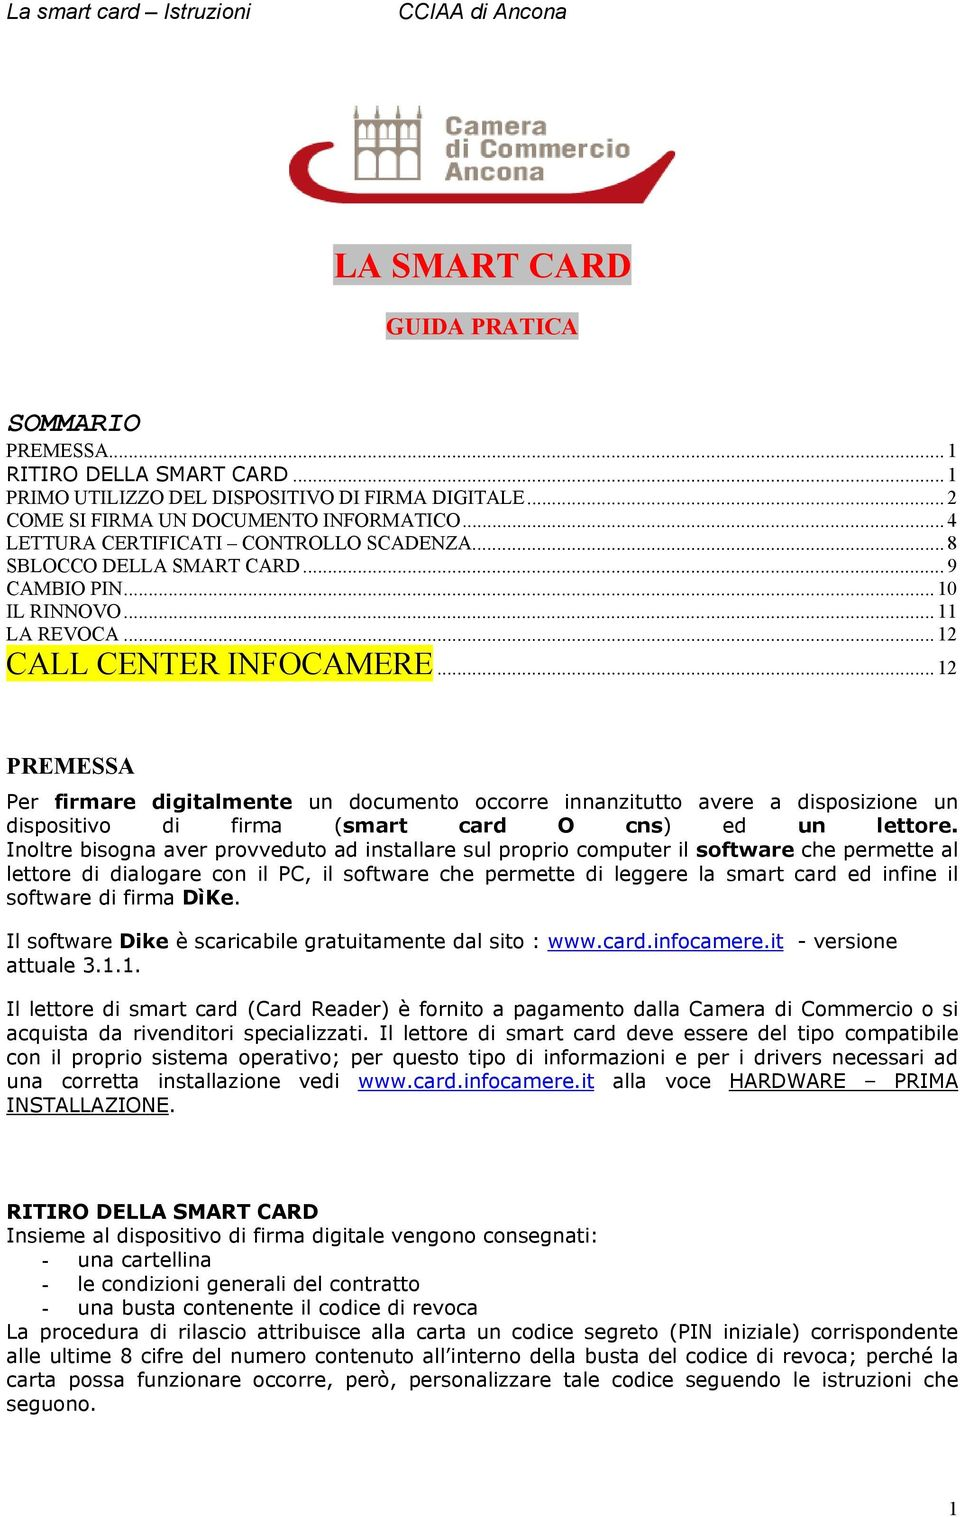 .. 12 PREMESSA Per firmare digitalmente un documento occorre innanzitutto avere a disposizione un dispositivo di firma (smart card O cns) ed un lettore.